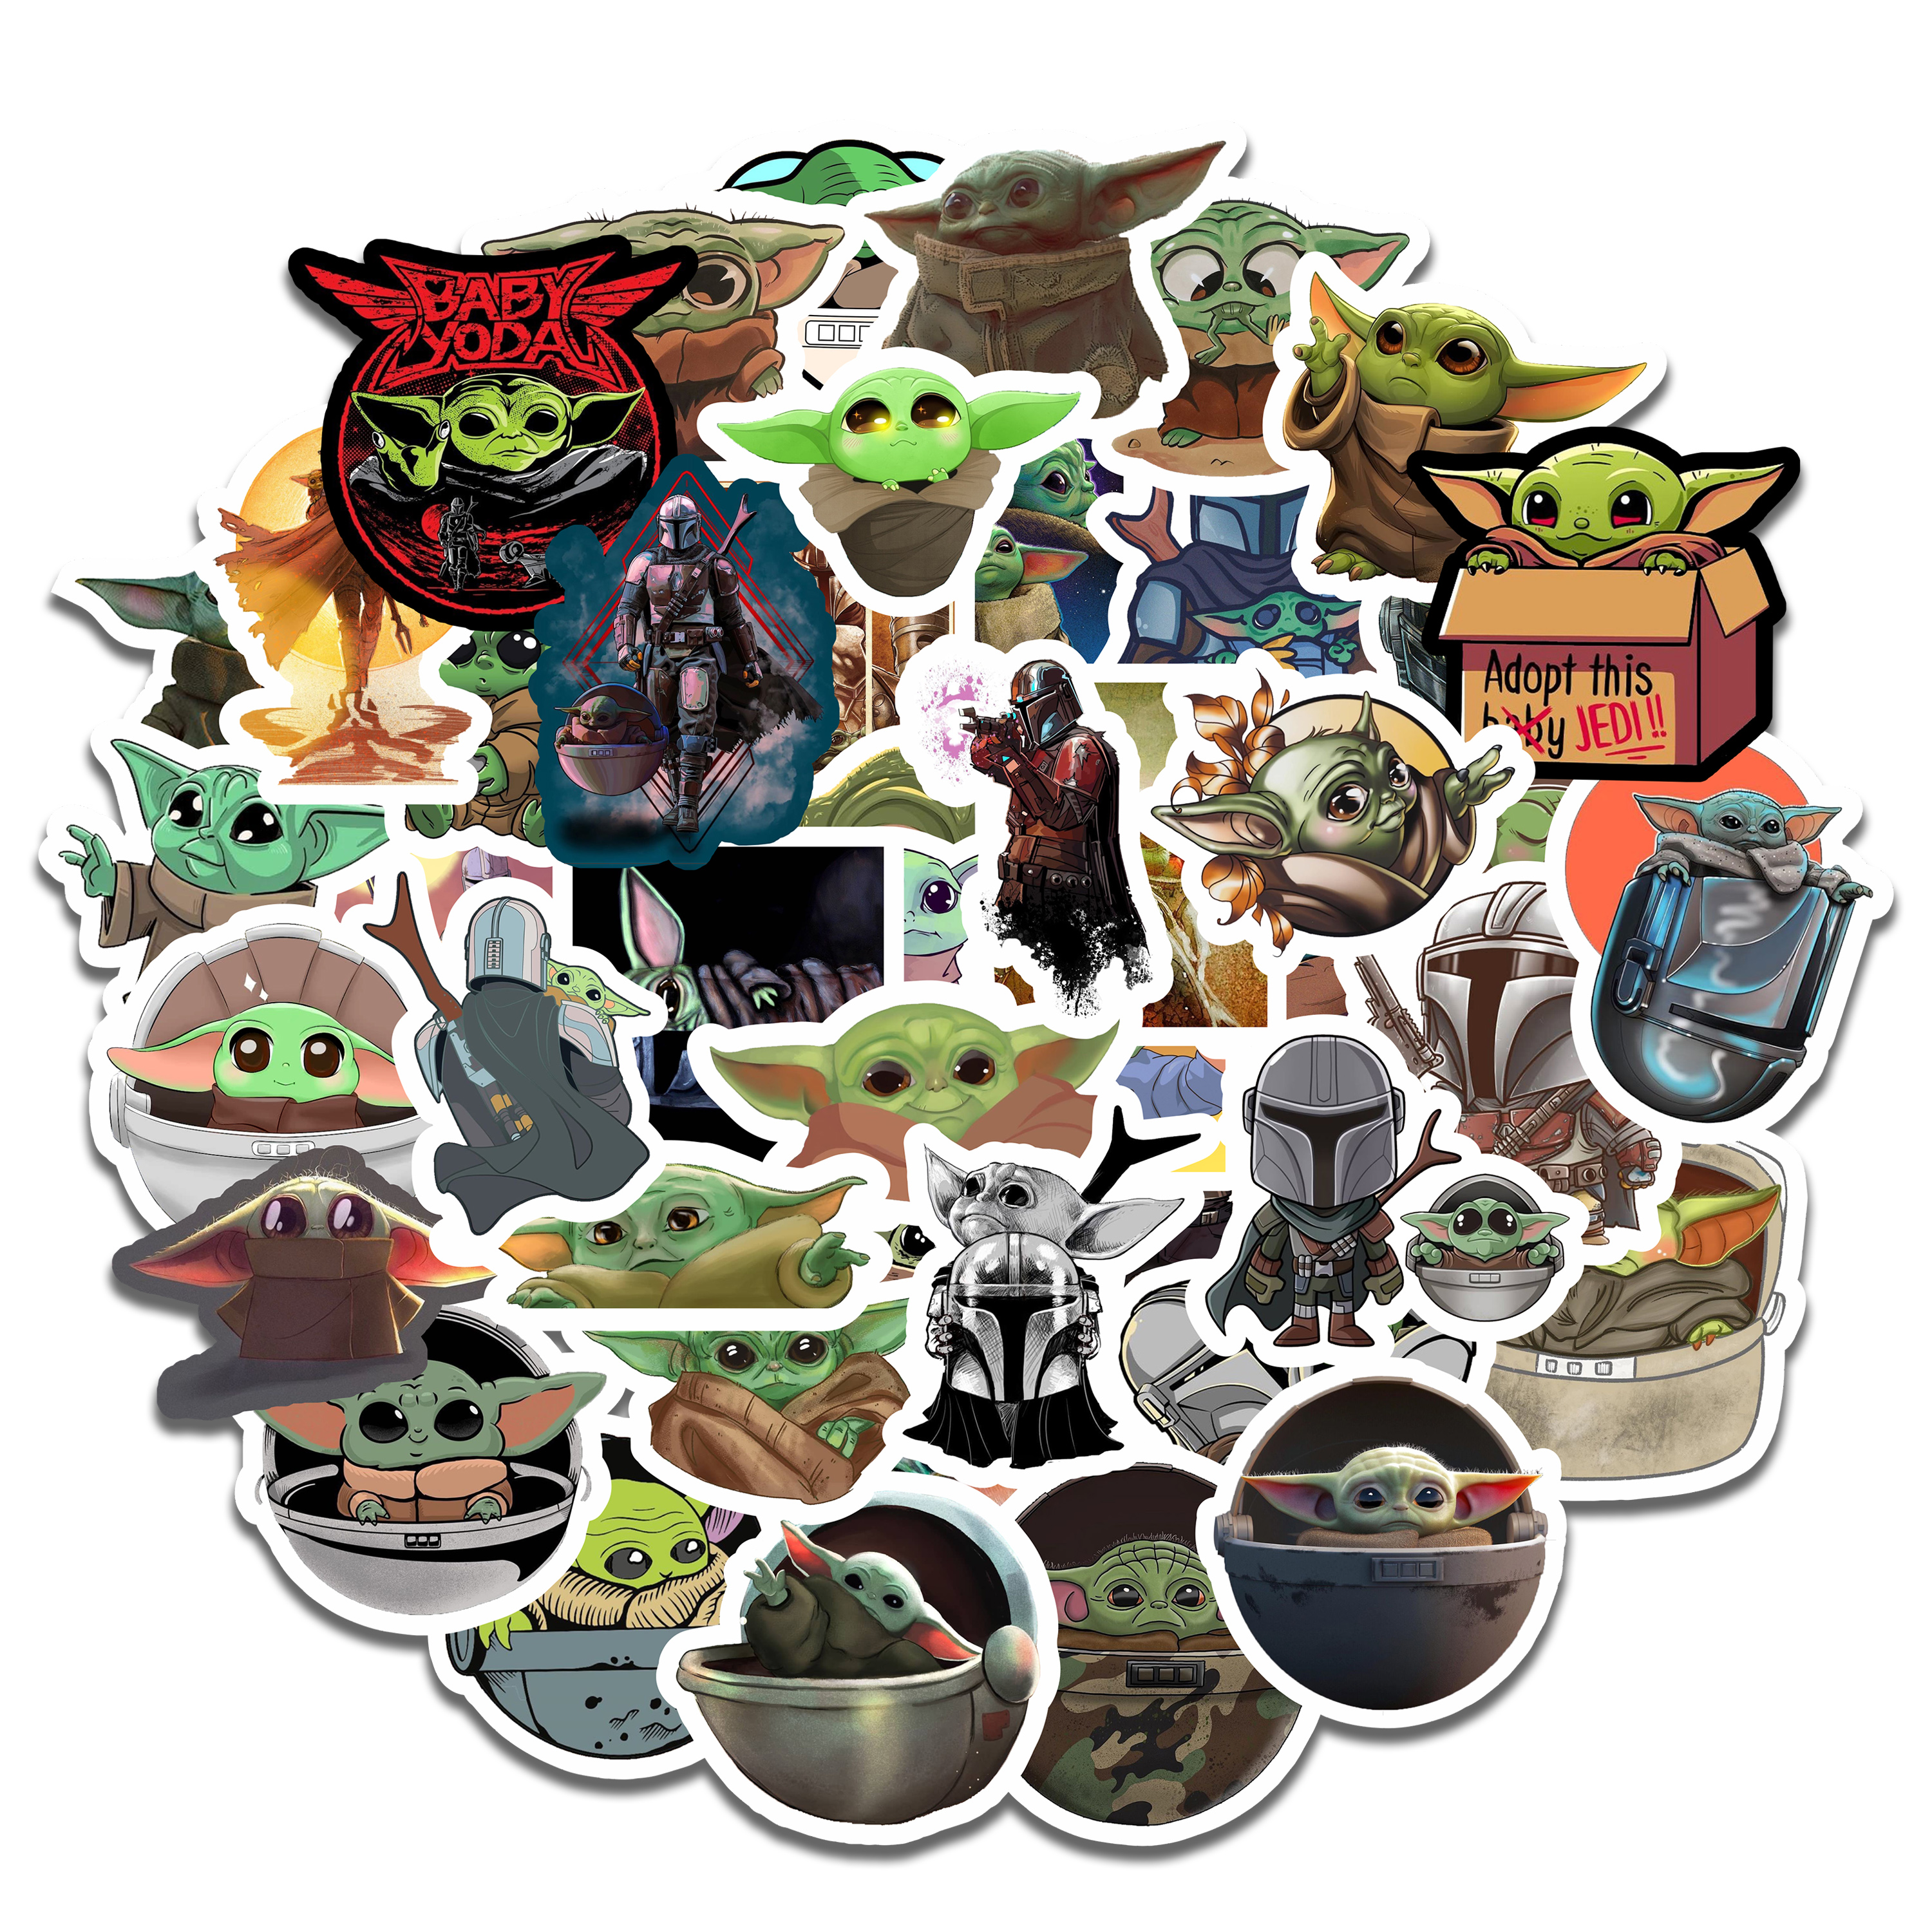 50PCS The Mandalorian Baby Yoda Stickers Waterproof For Laptop Moto Skateboard Luggage Guitar Furnitur Decal Toy Stickers